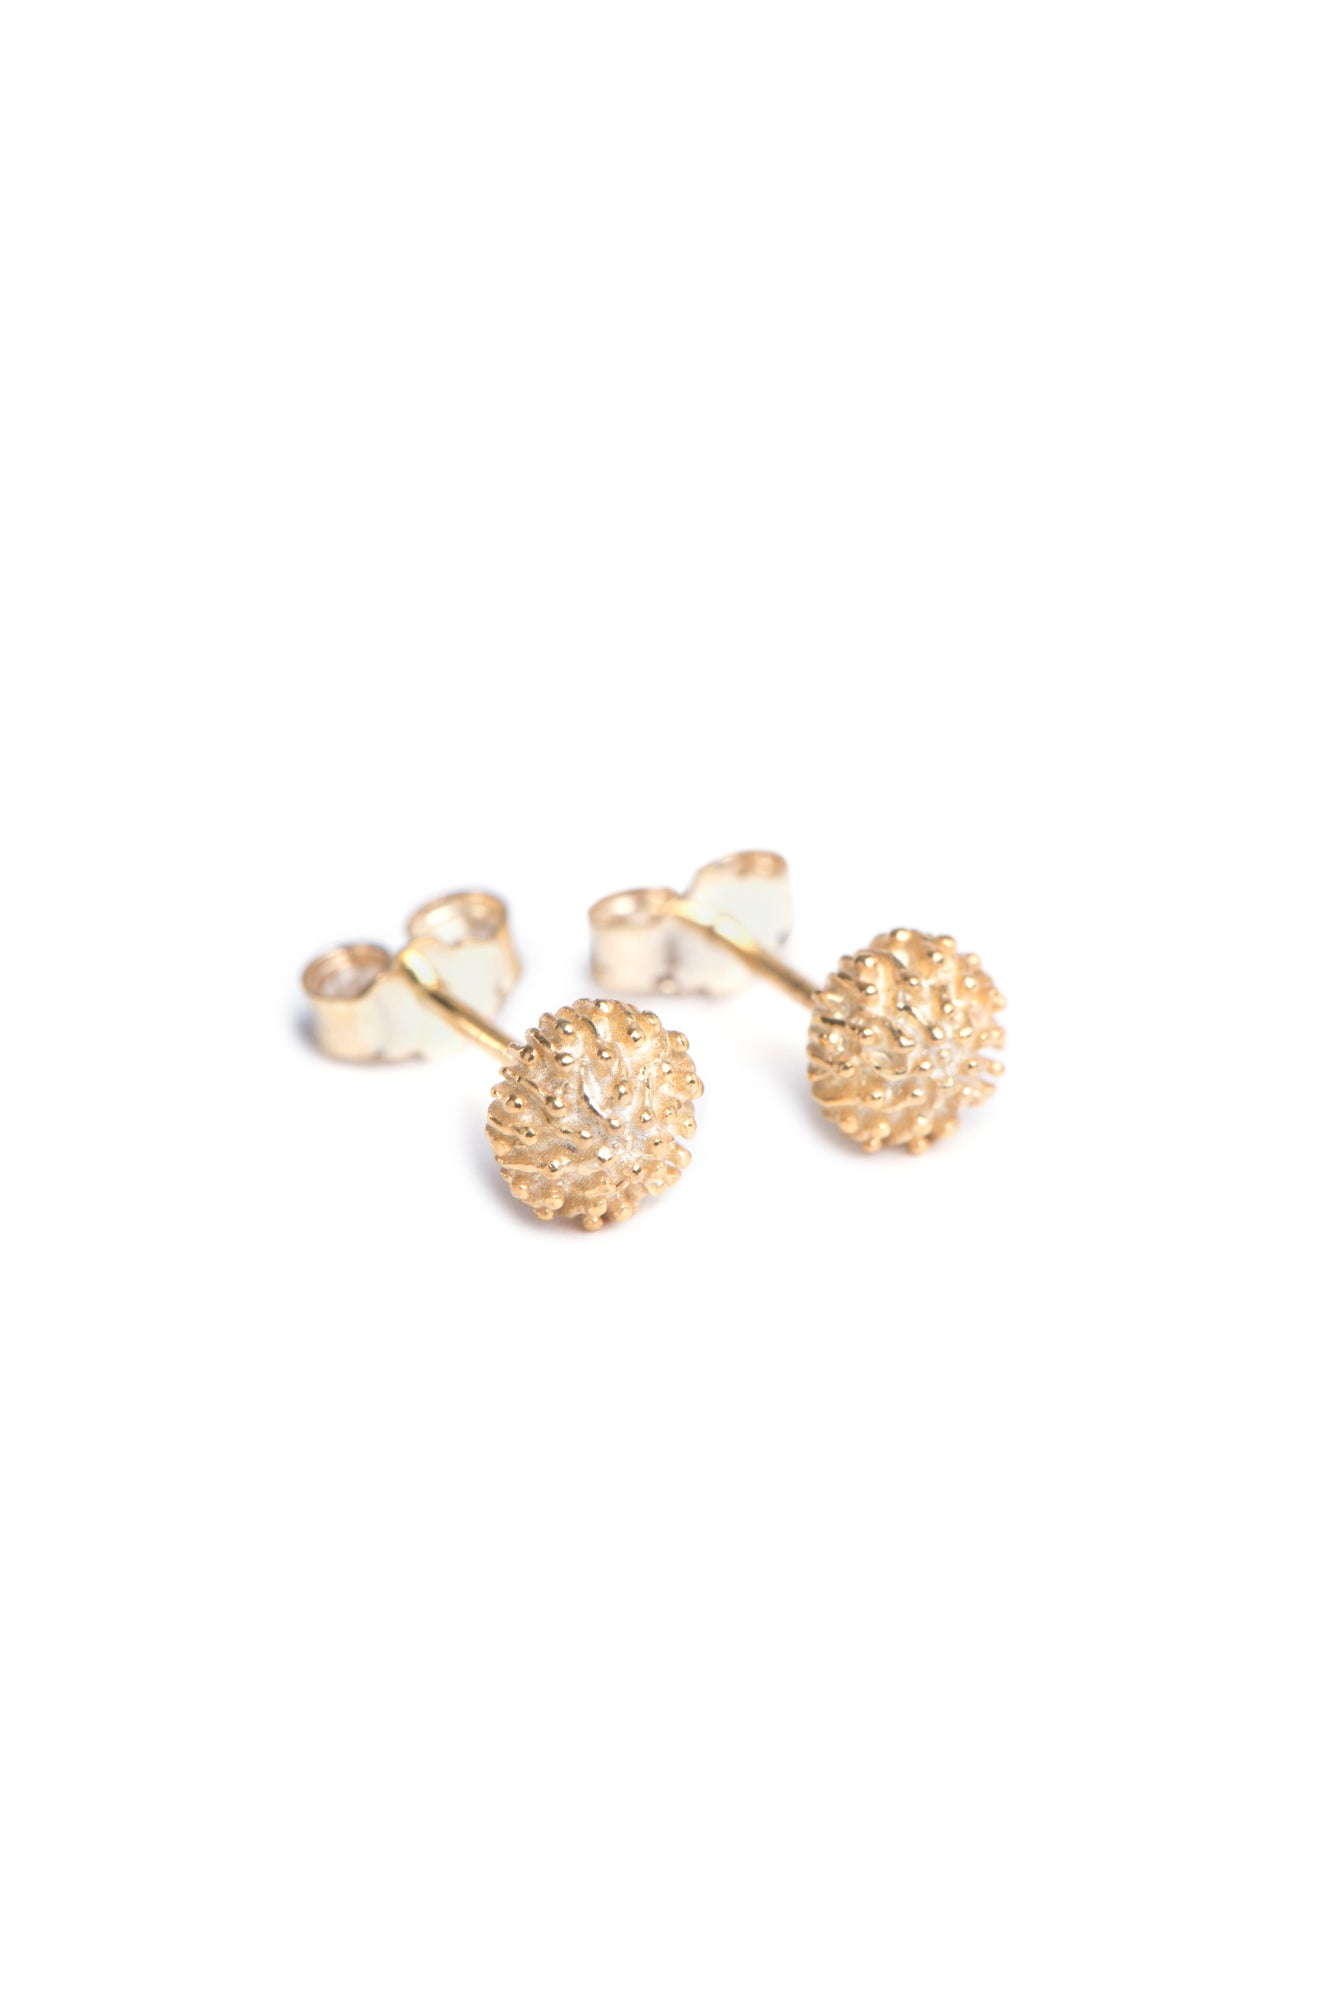 Stud style earrings manufactured in yellow gold inspired by South Africa's Protea Pincushion flowers